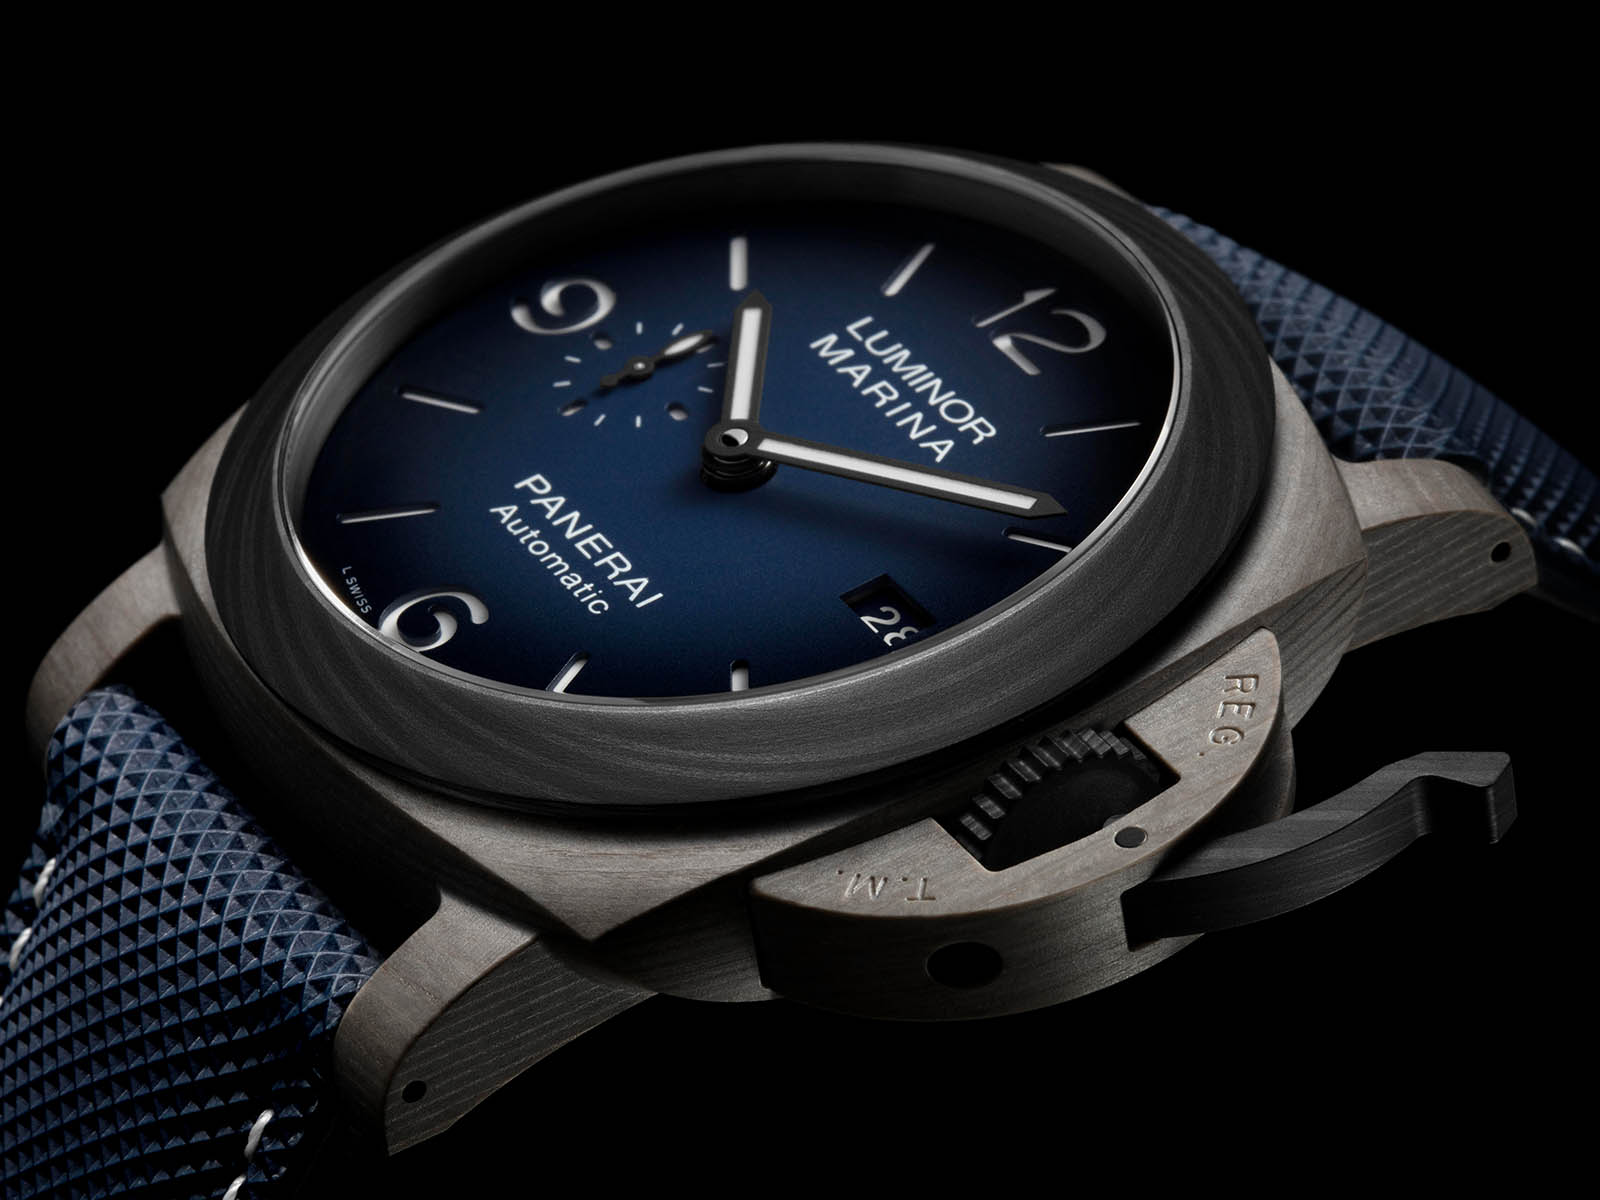 pam01663-officine-panerai-luminor-marina-fibratech-44mm-blue-dial-2.jpg